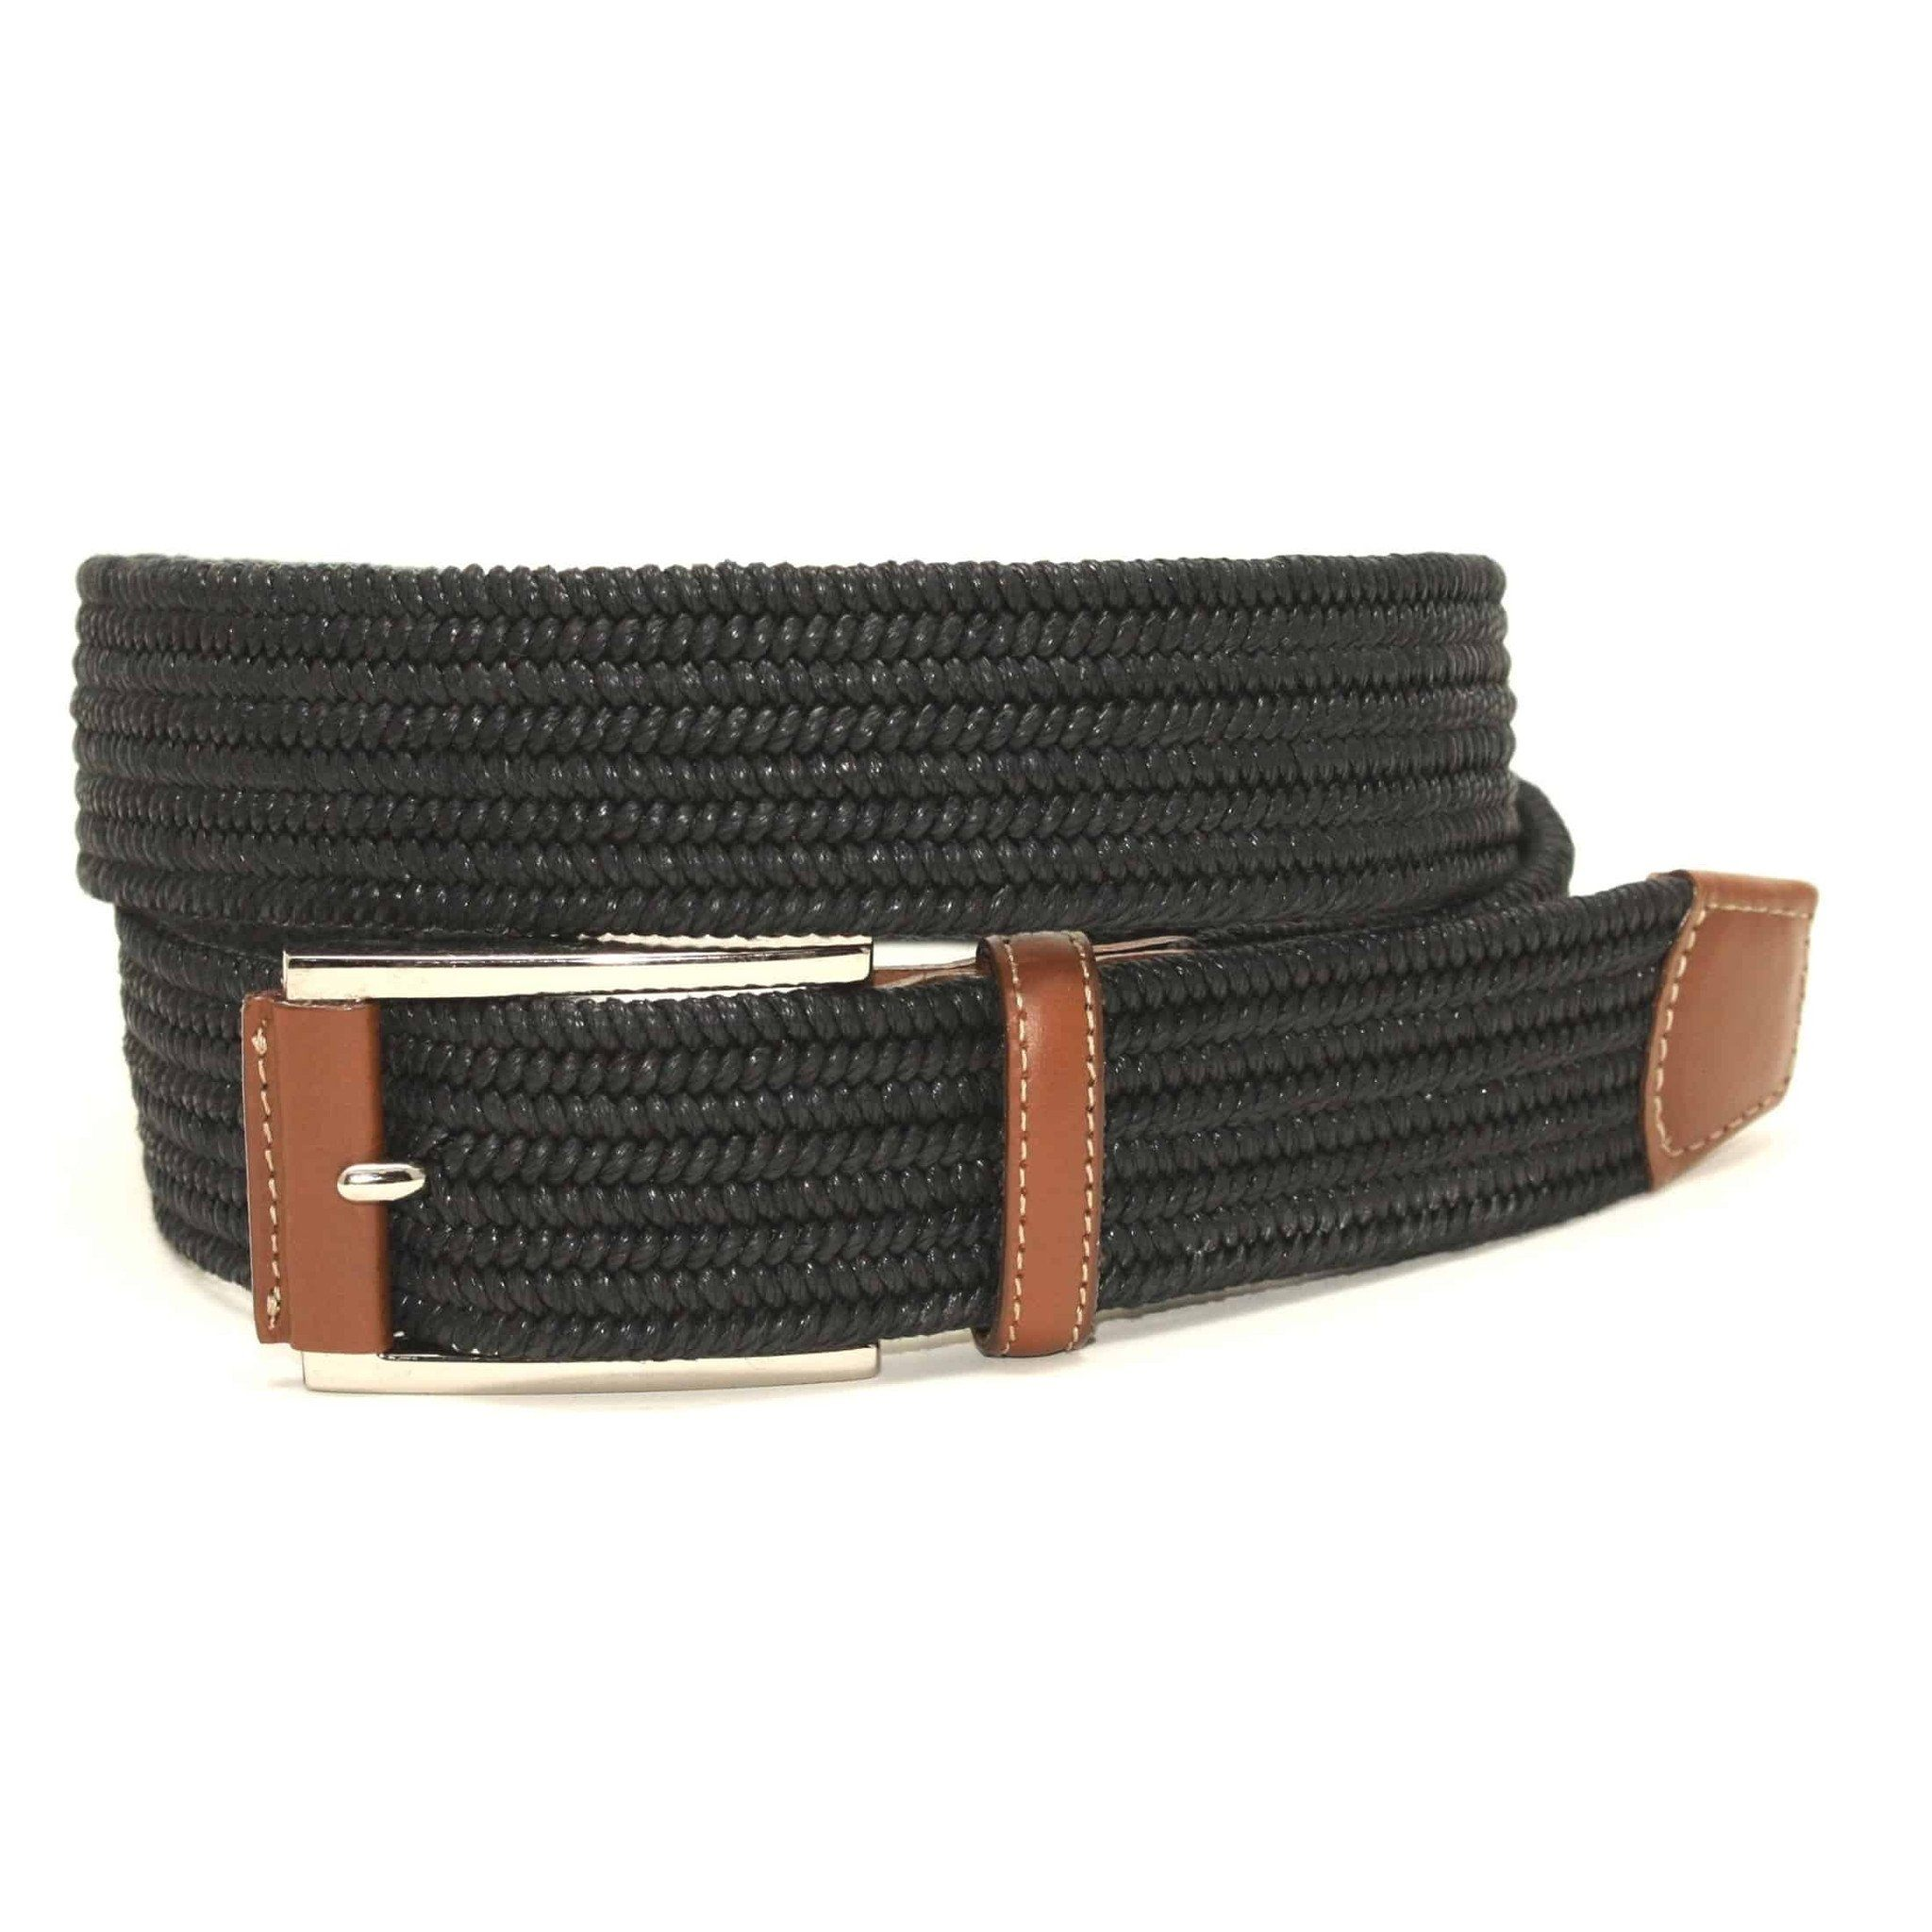 Italian Mini Woven Cotton Stretch - Black,BELT,GentRow.com, | GentRow.com